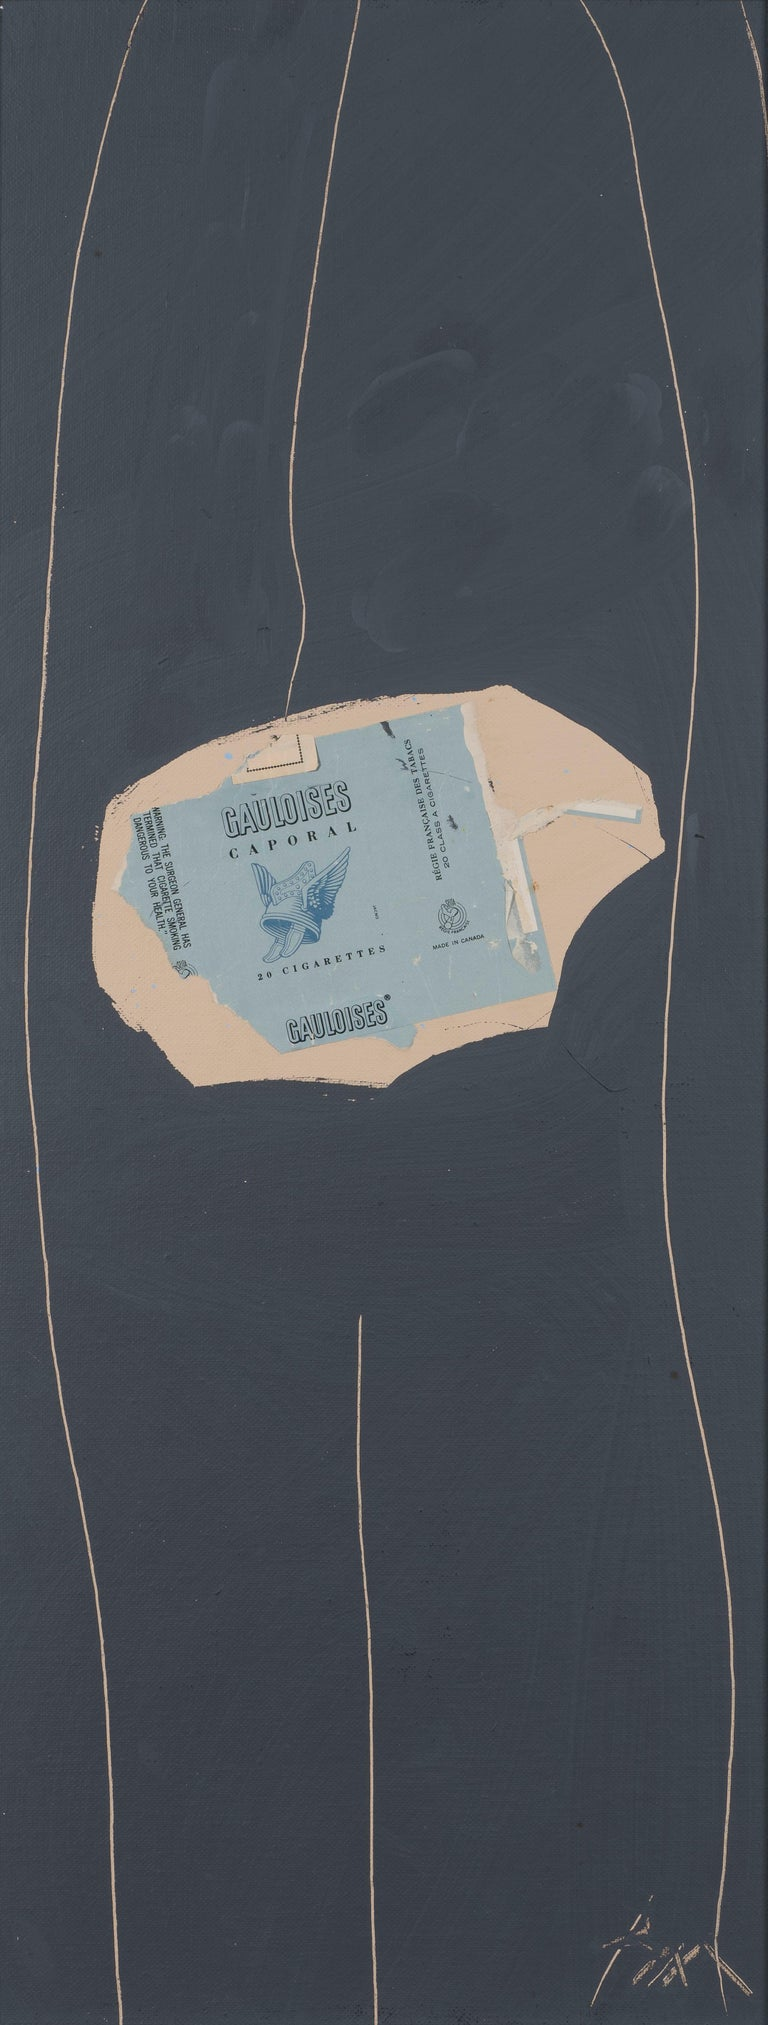 Gauloises on Grey No. 29 by ROBERT MOTHERWELL - Collage, Acrylic, Contemporary - American Modern Mixed Media Art by Robert Motherwell